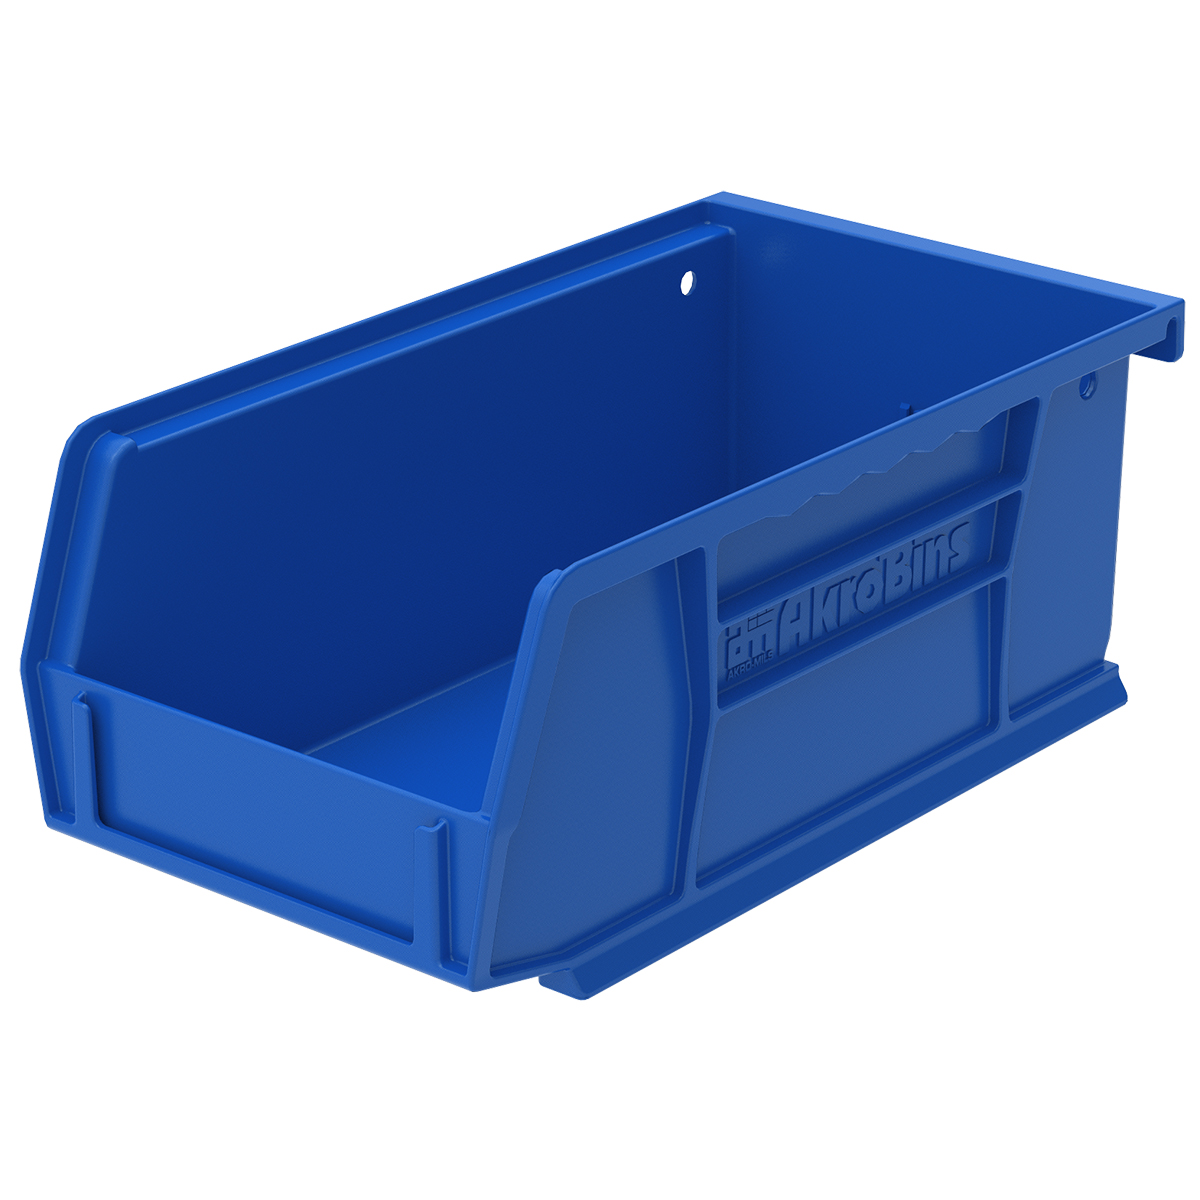 AkroBin 7-3/8 x 4-1/8 x 3, Blue (30220BLUE).  This item sold in carton quantities of 24.